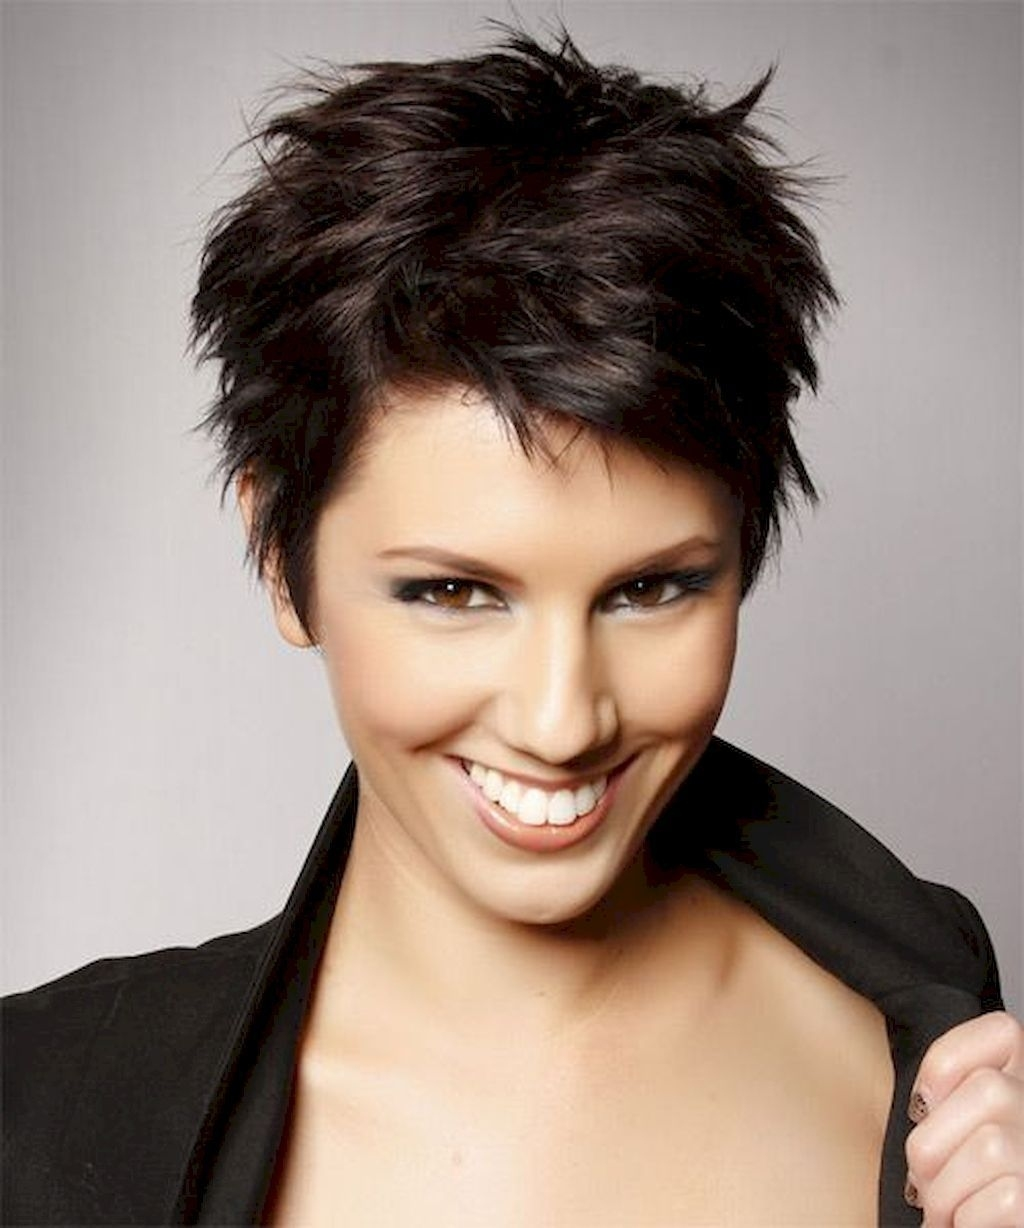 72 Classy Short Pixie Haircuts And Hairstyles For Thick Hair   Short intended for Cropped Haircuts For Thick Hair